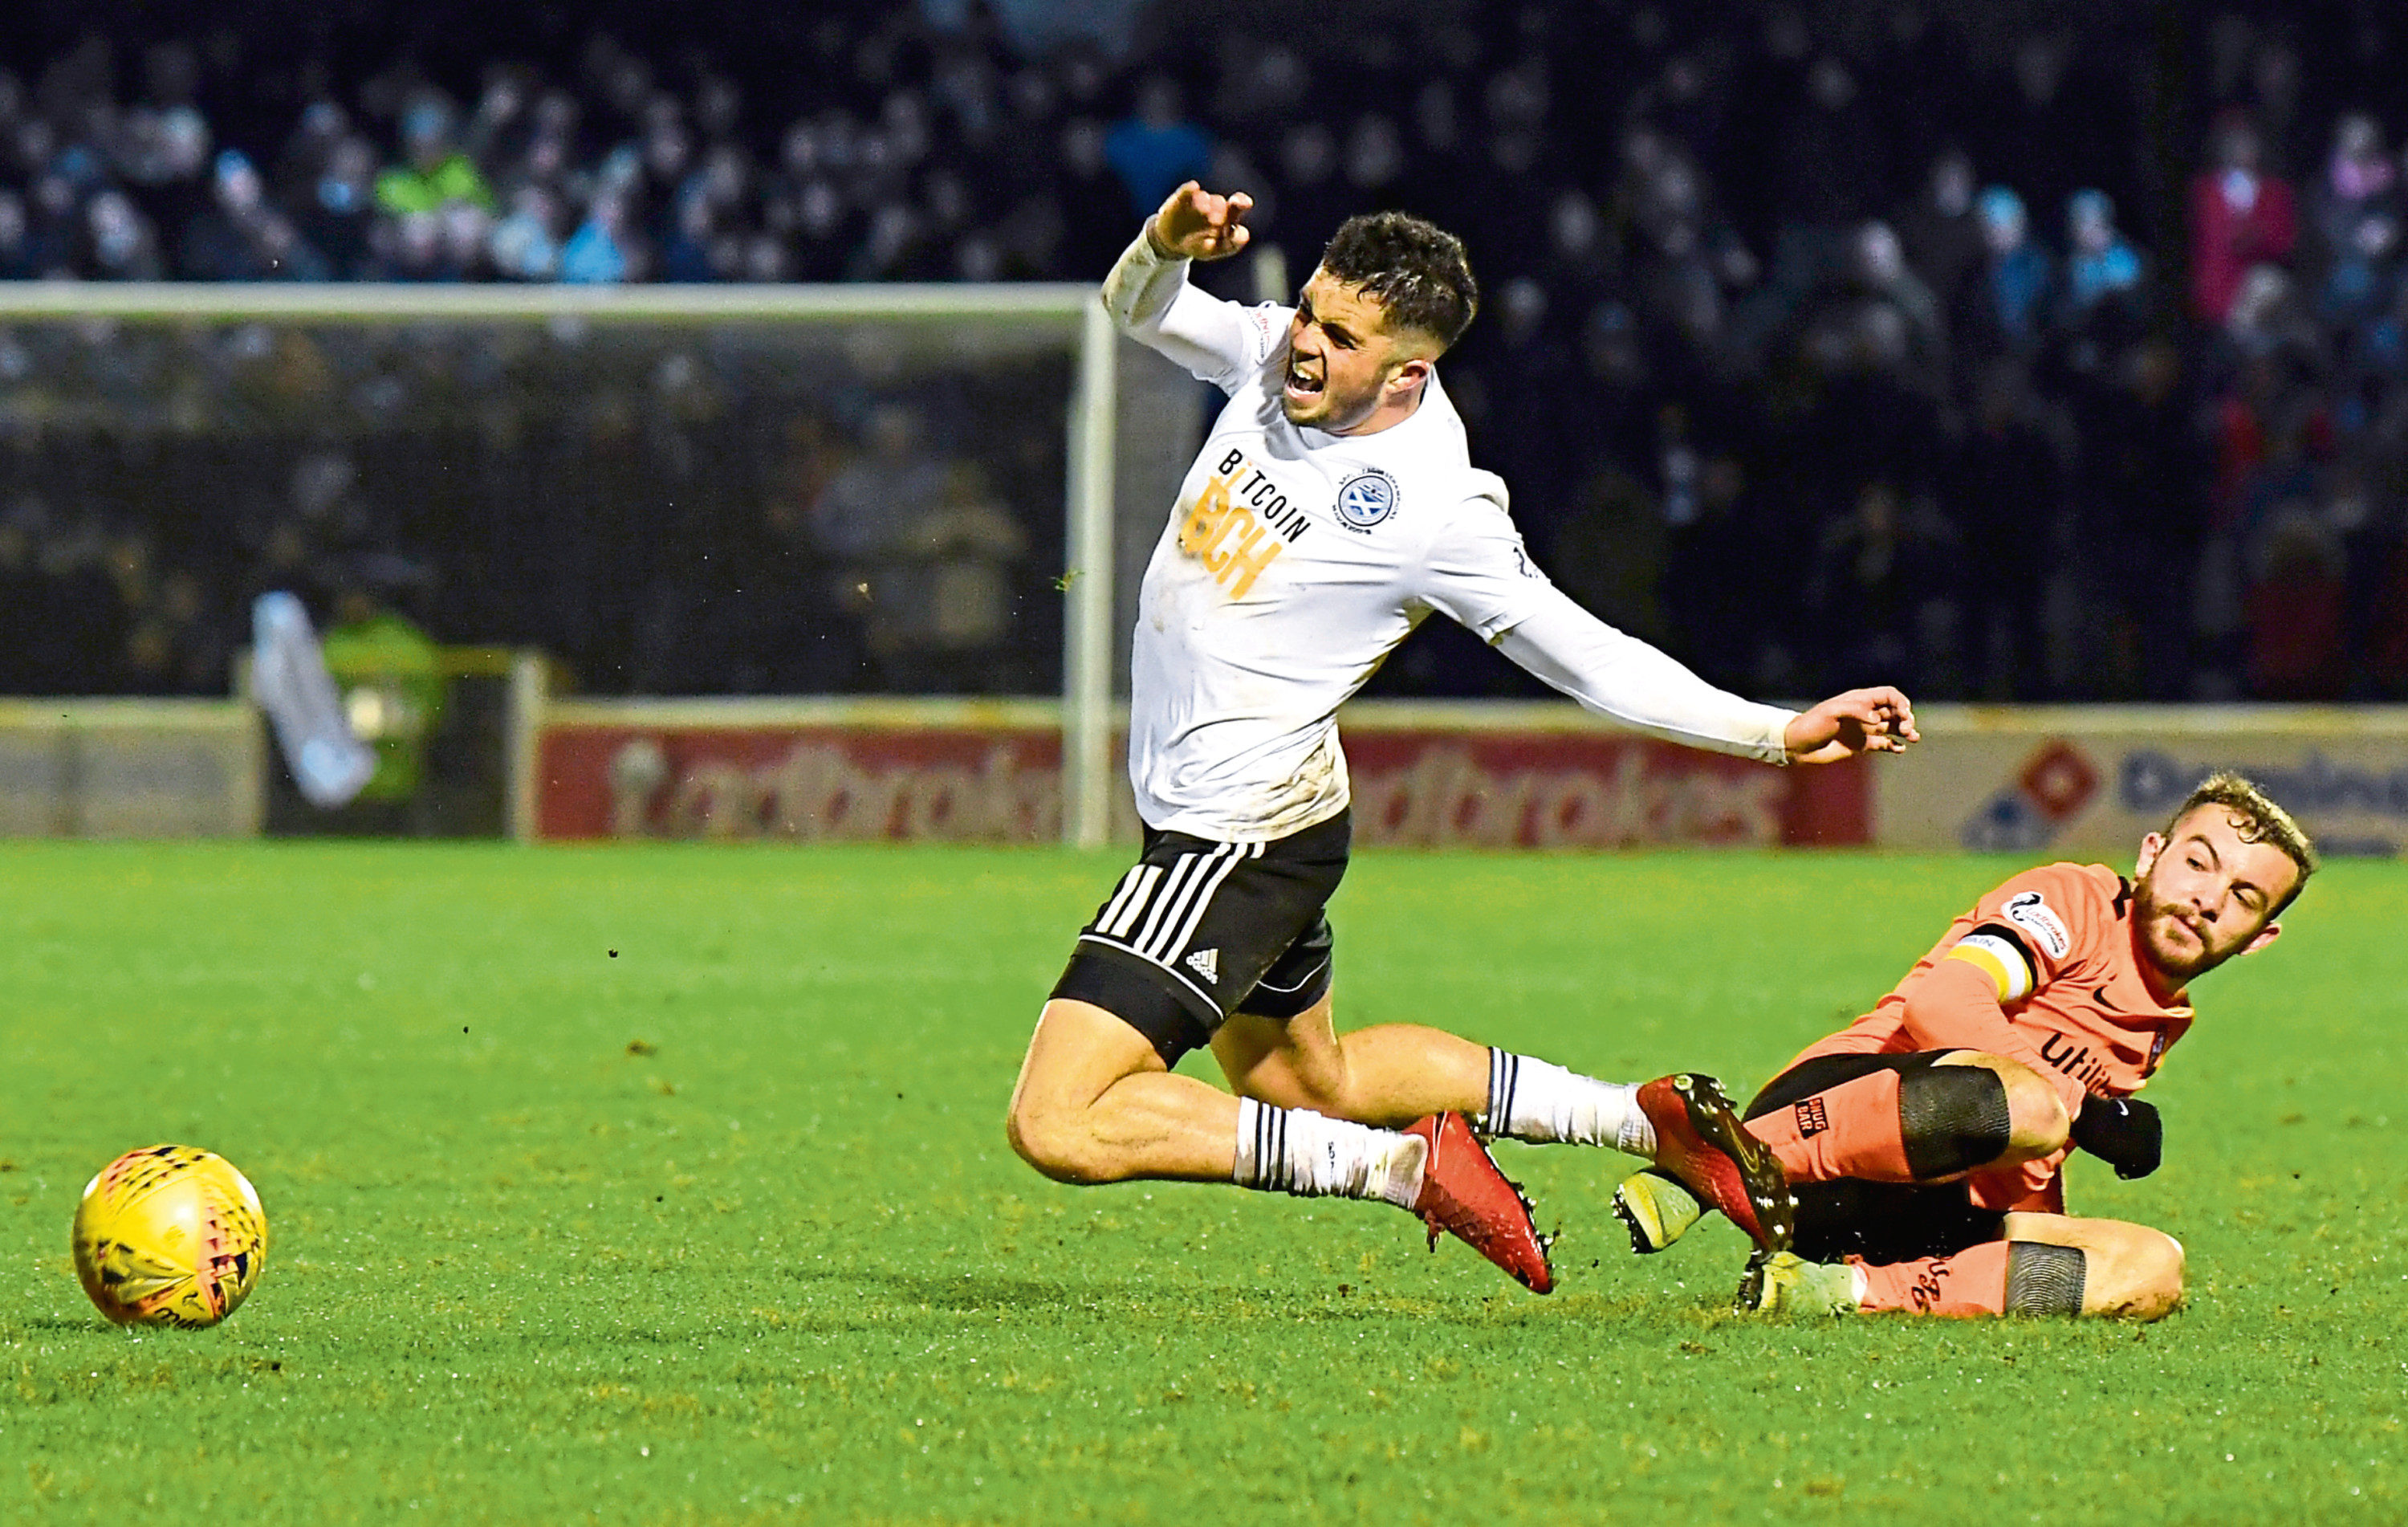 Declan McDaid is fouled by Dundee United's Paul McMullan.